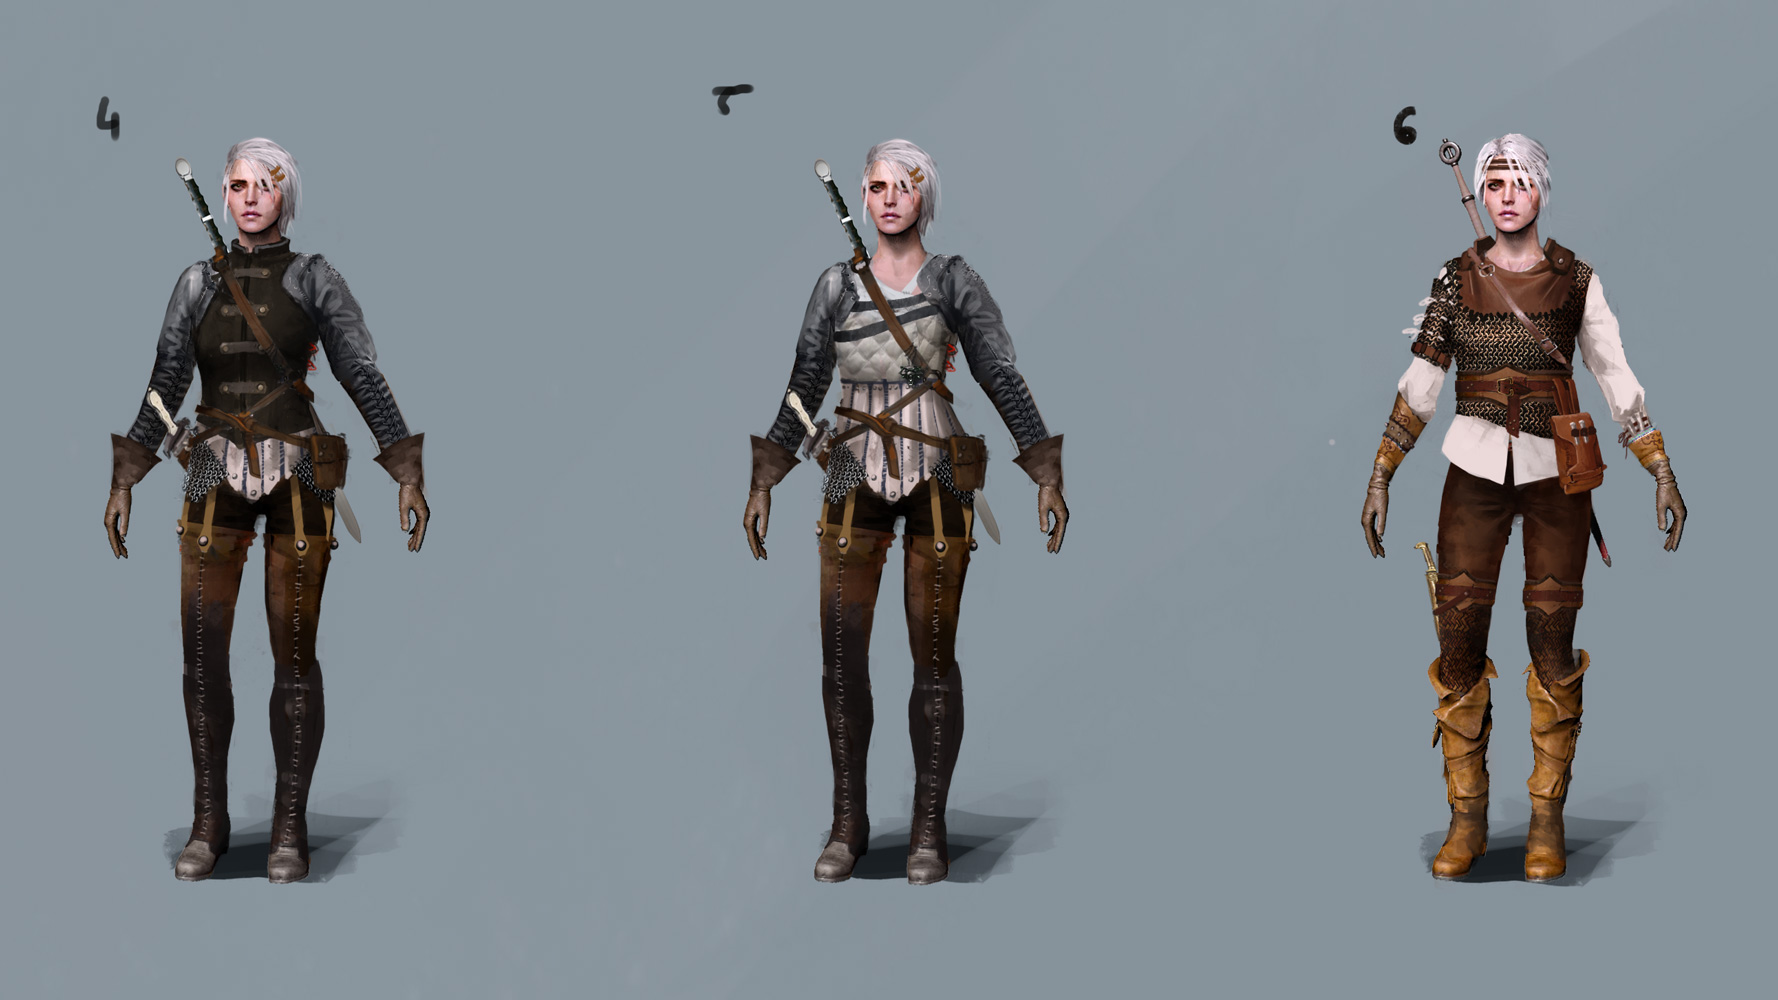 Alternate Look for Ciri was on Xbox Live ( Now gone?l